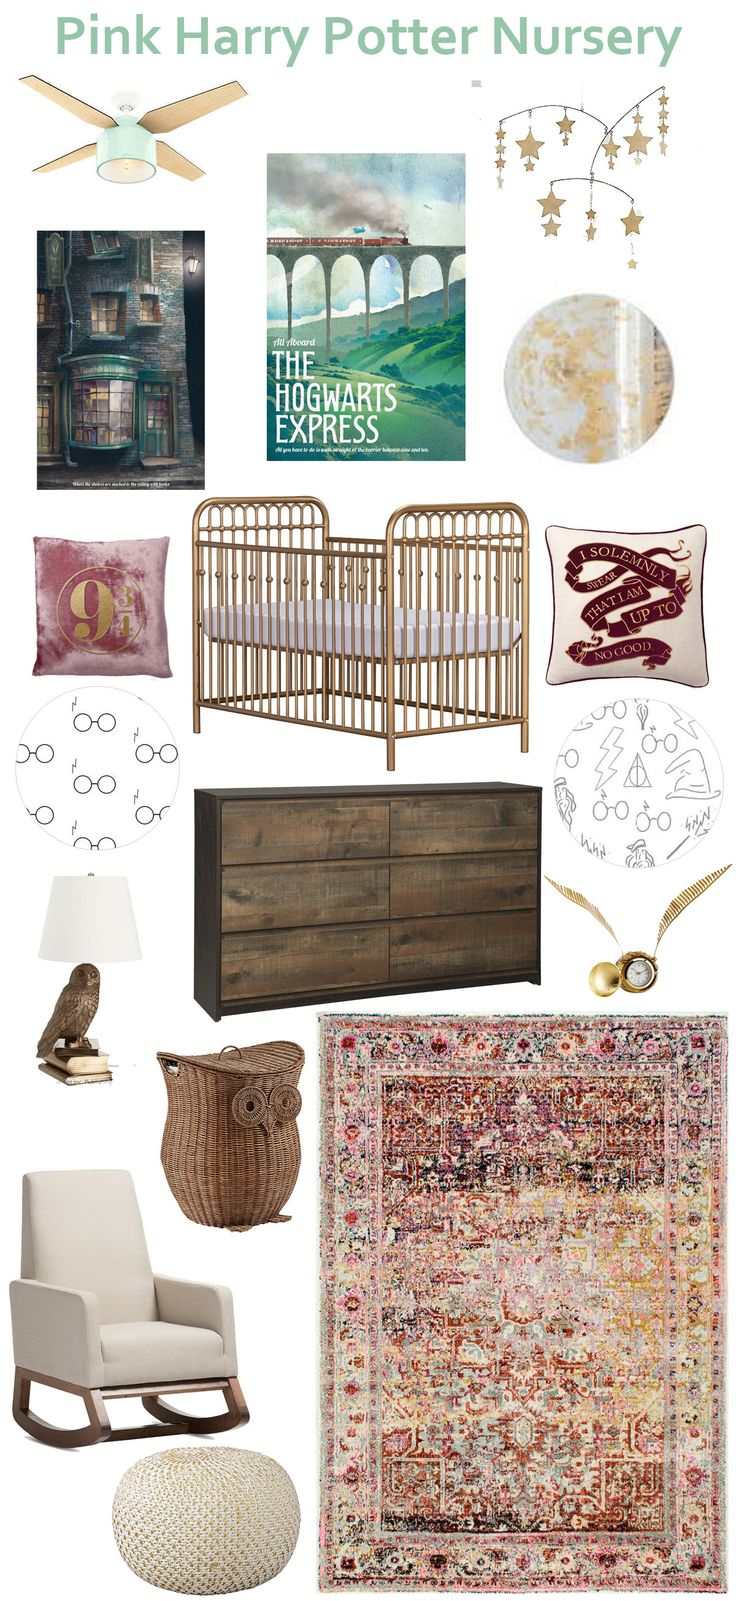 Adorable pink, gold, and green Harry Potter nursery inspiration using accessories from PB teen's new Harry Potter line along with art and linens from Etsy!